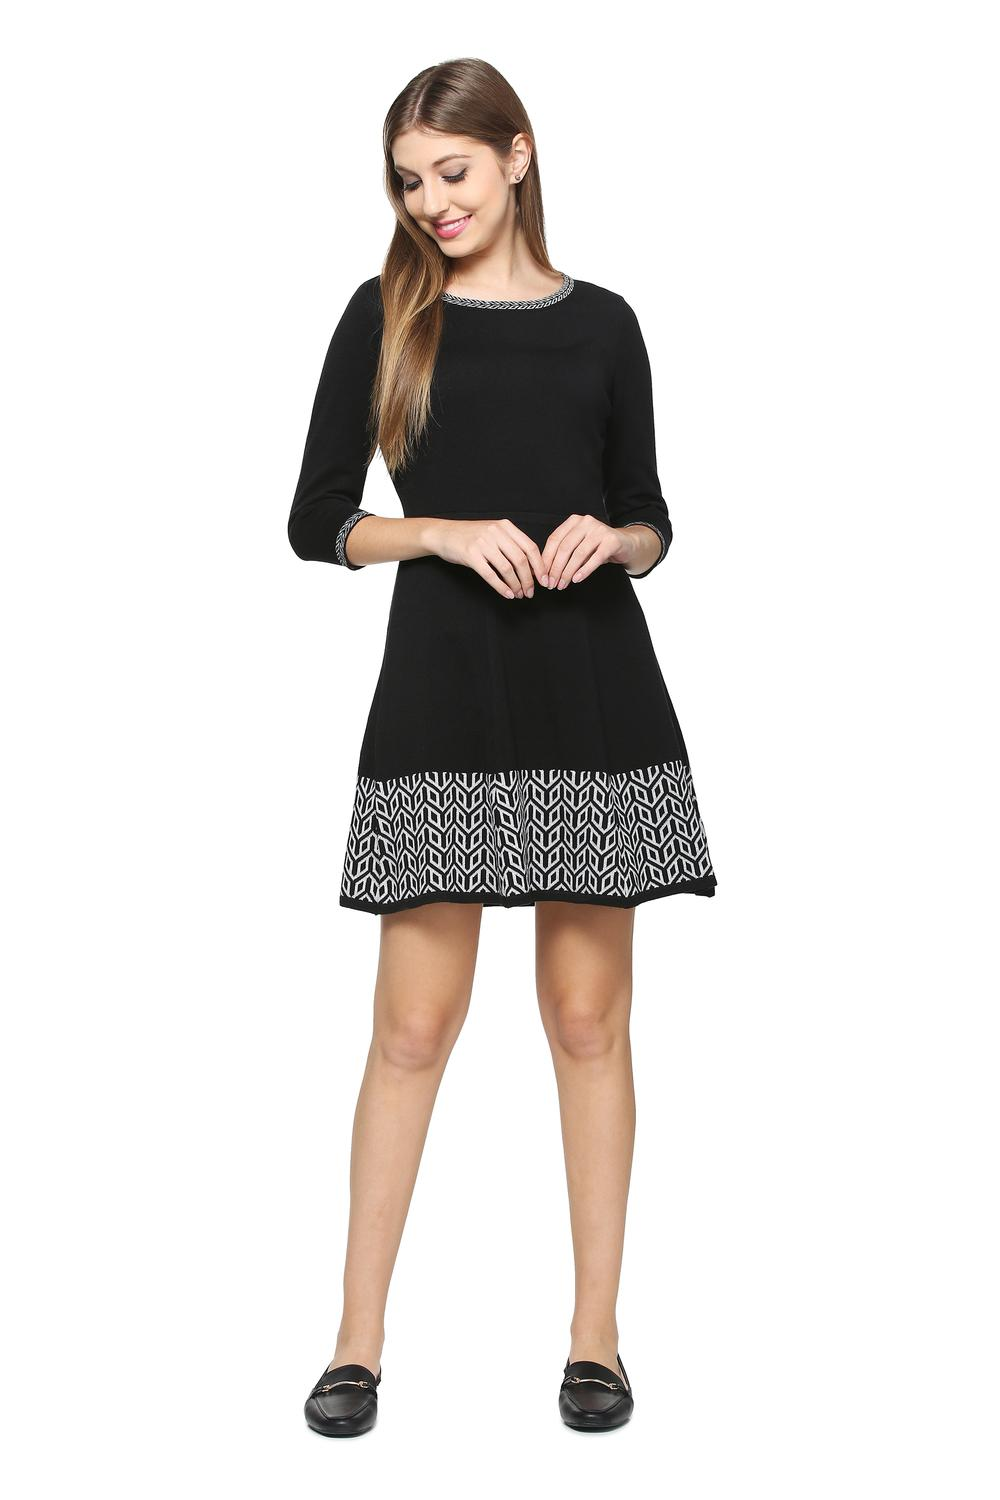 0fe9bfdc13 Solly Dresses, Allen Solly Black Dress for Women at Allensolly.com